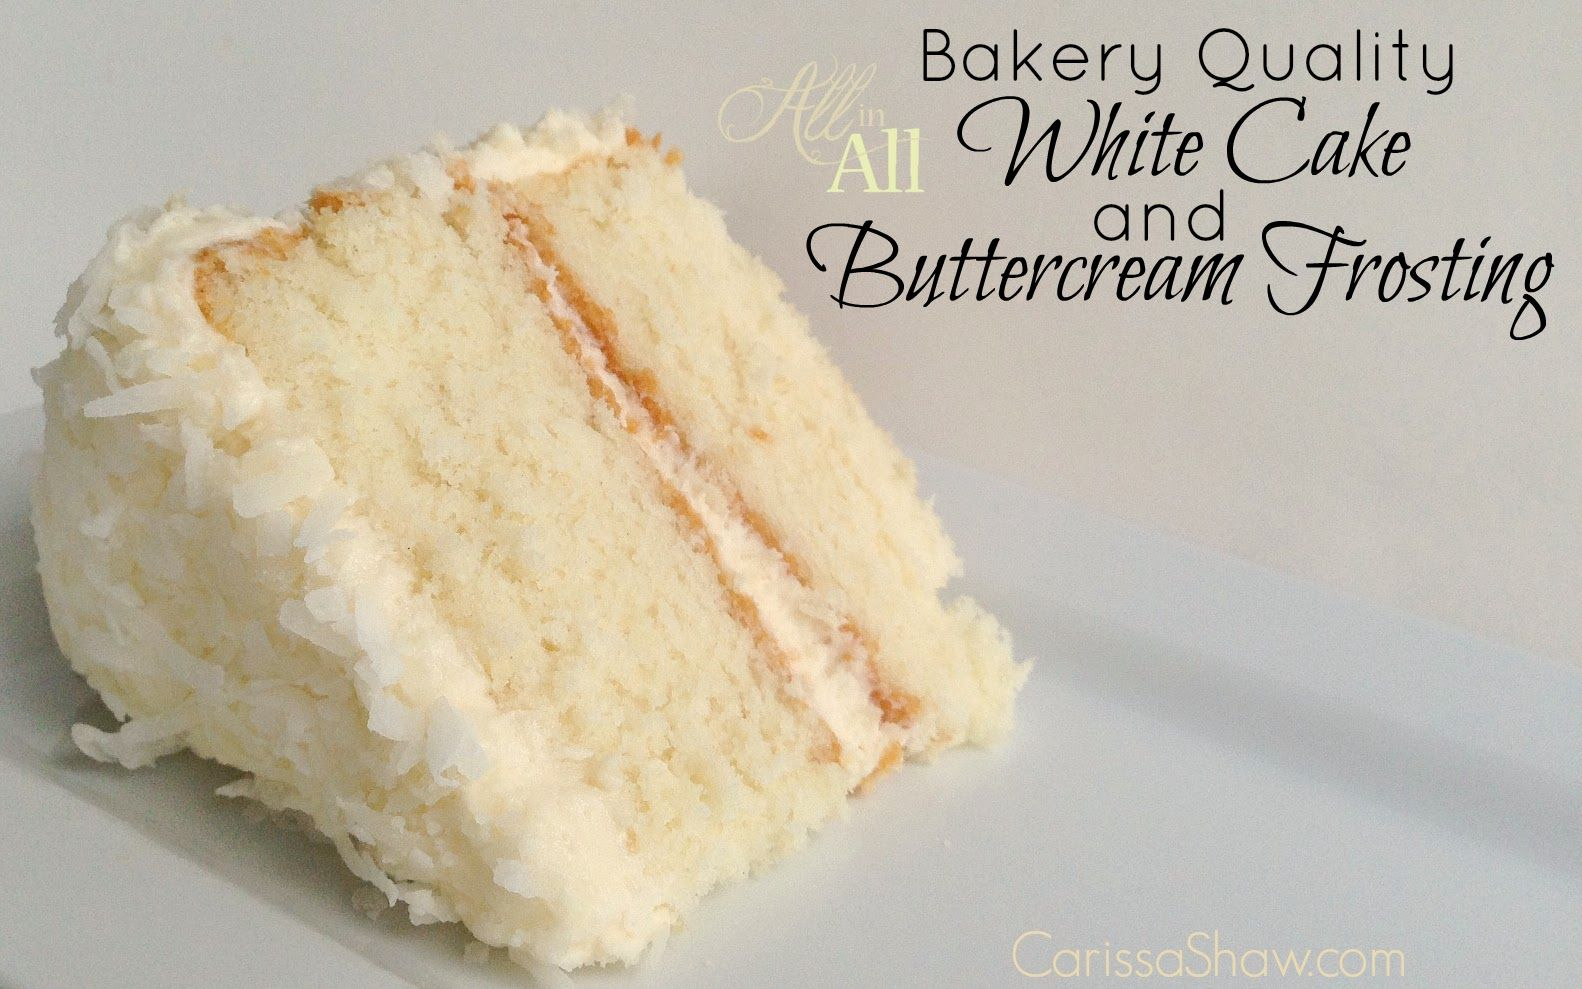 White Cake Recipe White cakes Bakeries and Frosting